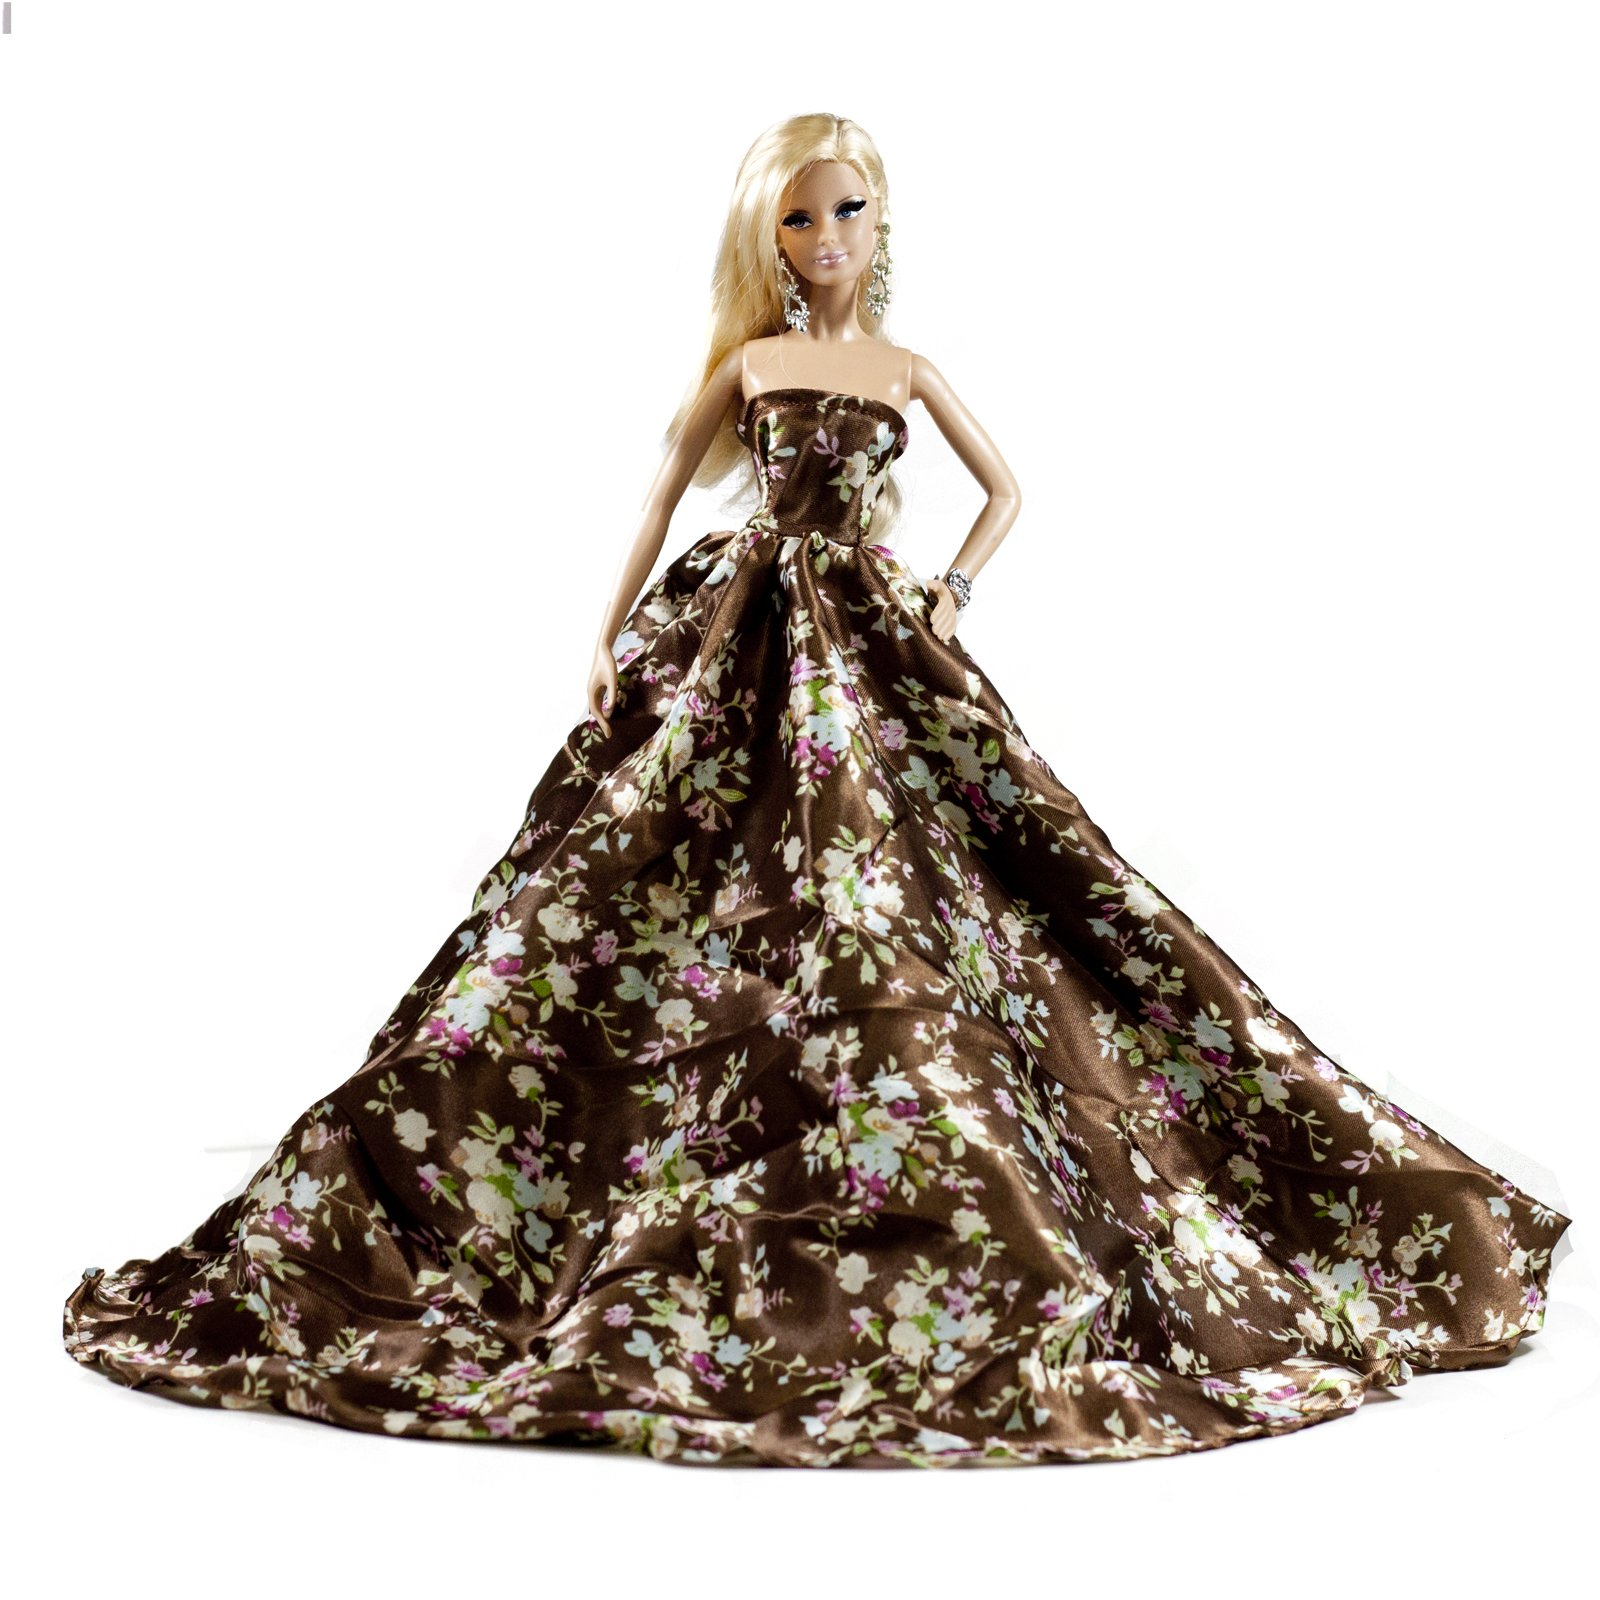 Peregrine Silk Satin Zebra Print Strapless Fit and Flare Floor Length Fishtail Gown for 11.5 inches Dolls